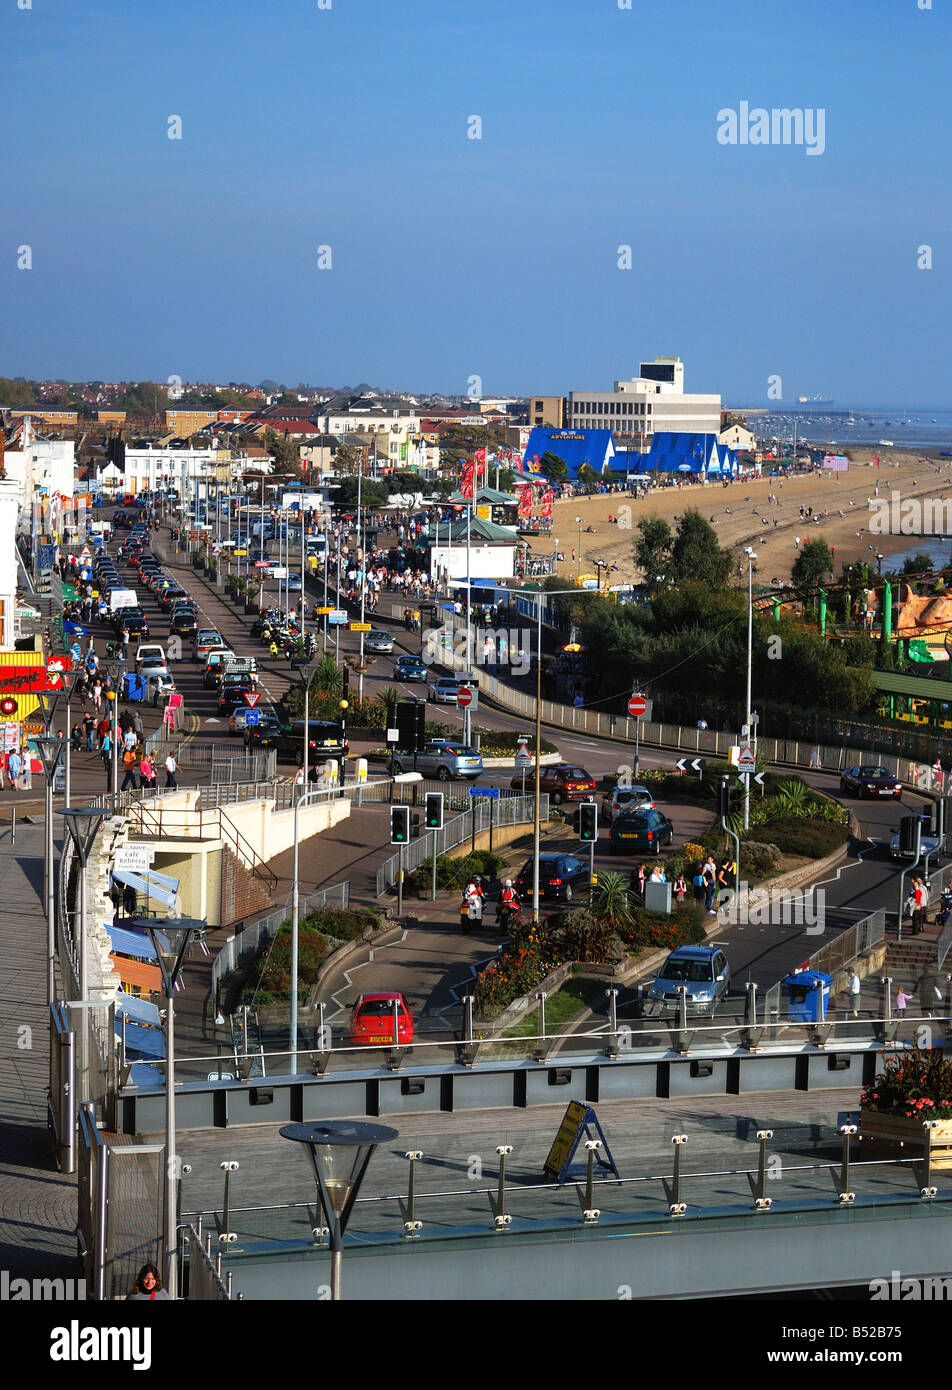 east facing - a view of Southend on Sea seafront from the pier terrace - Stock Image